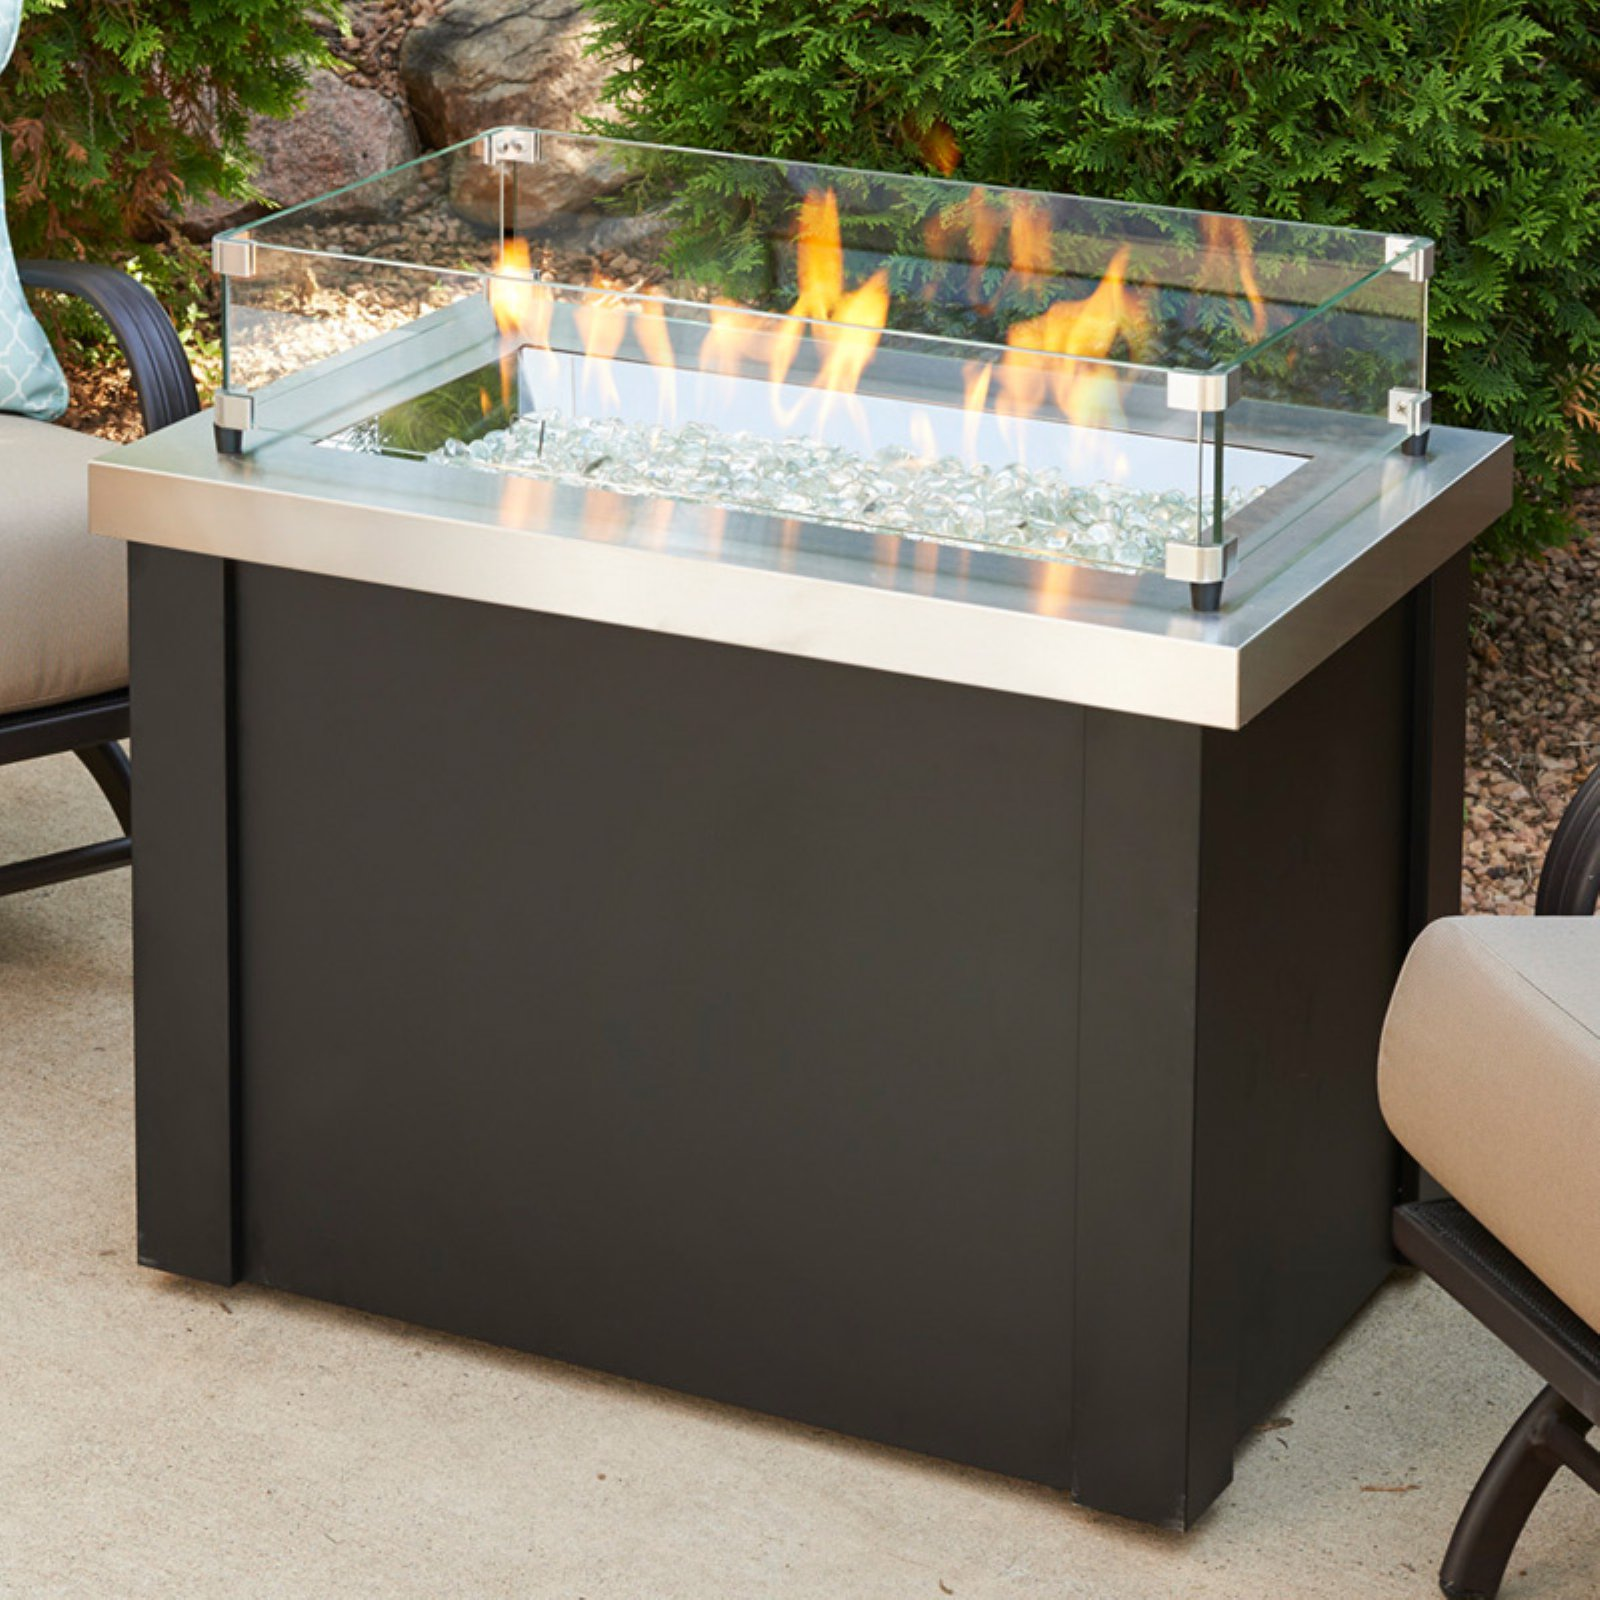 Outdoor GreatRoom Providence 36 in. Fire Table with Free Cover